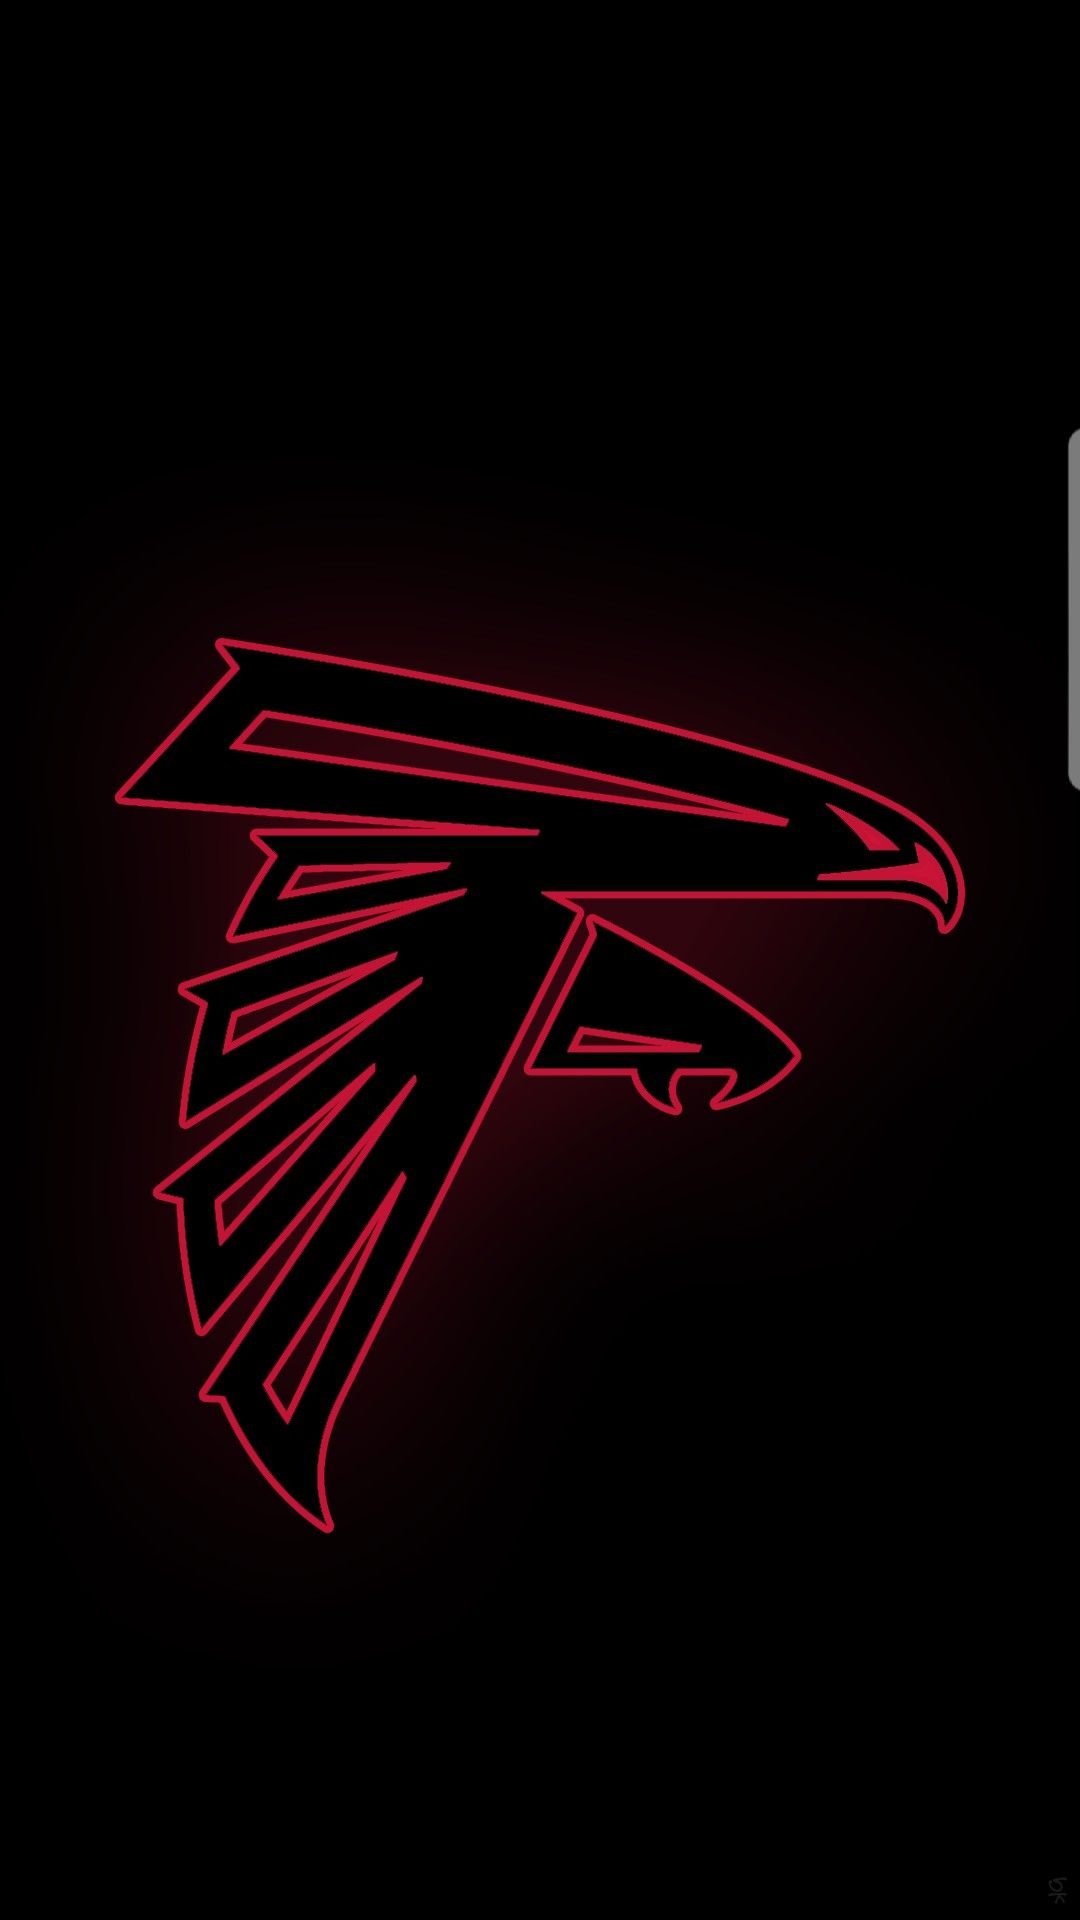 Pin By Archie Douglas On Sportz Wallpaperz Atlanta Falcons Wallpaper Atlanta Falcons Football Atlanta Falcons Art